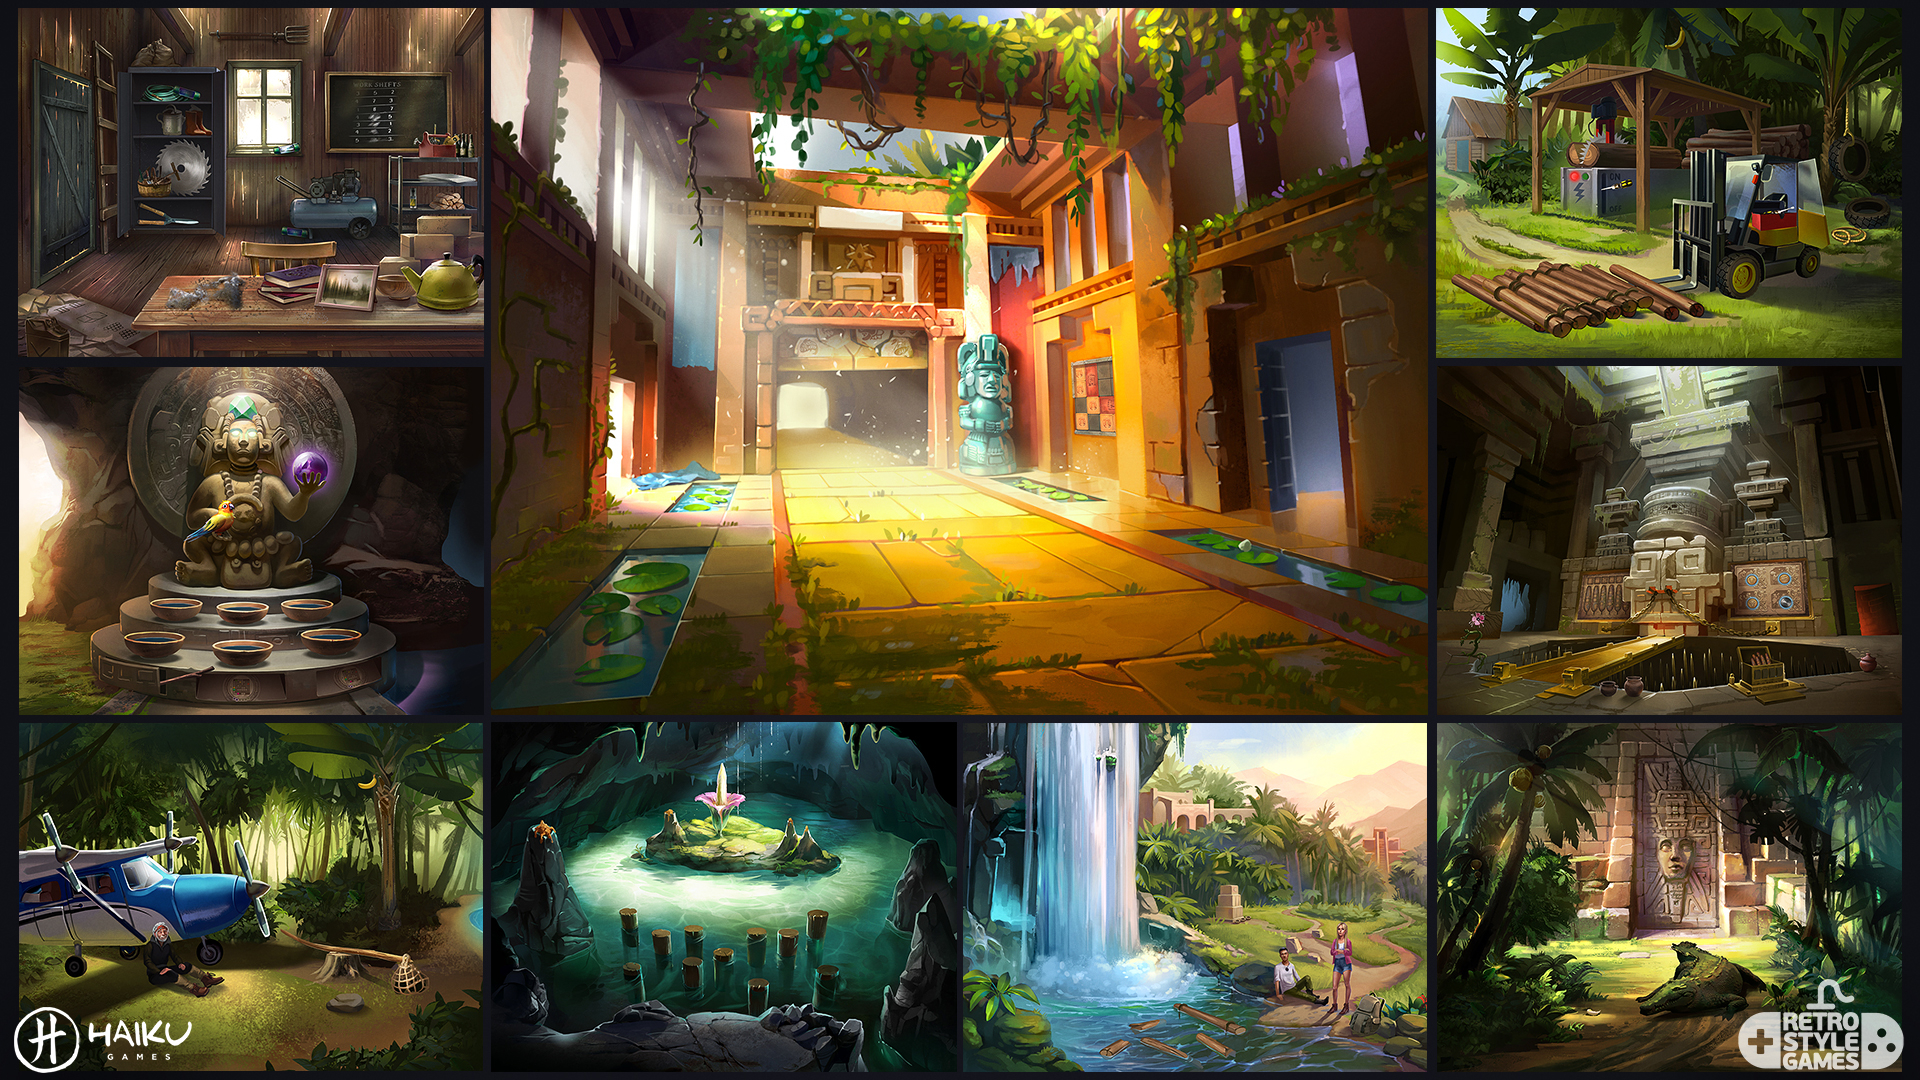 Hidden Ruins Adventure Escape full art sheet 1 backgrounds